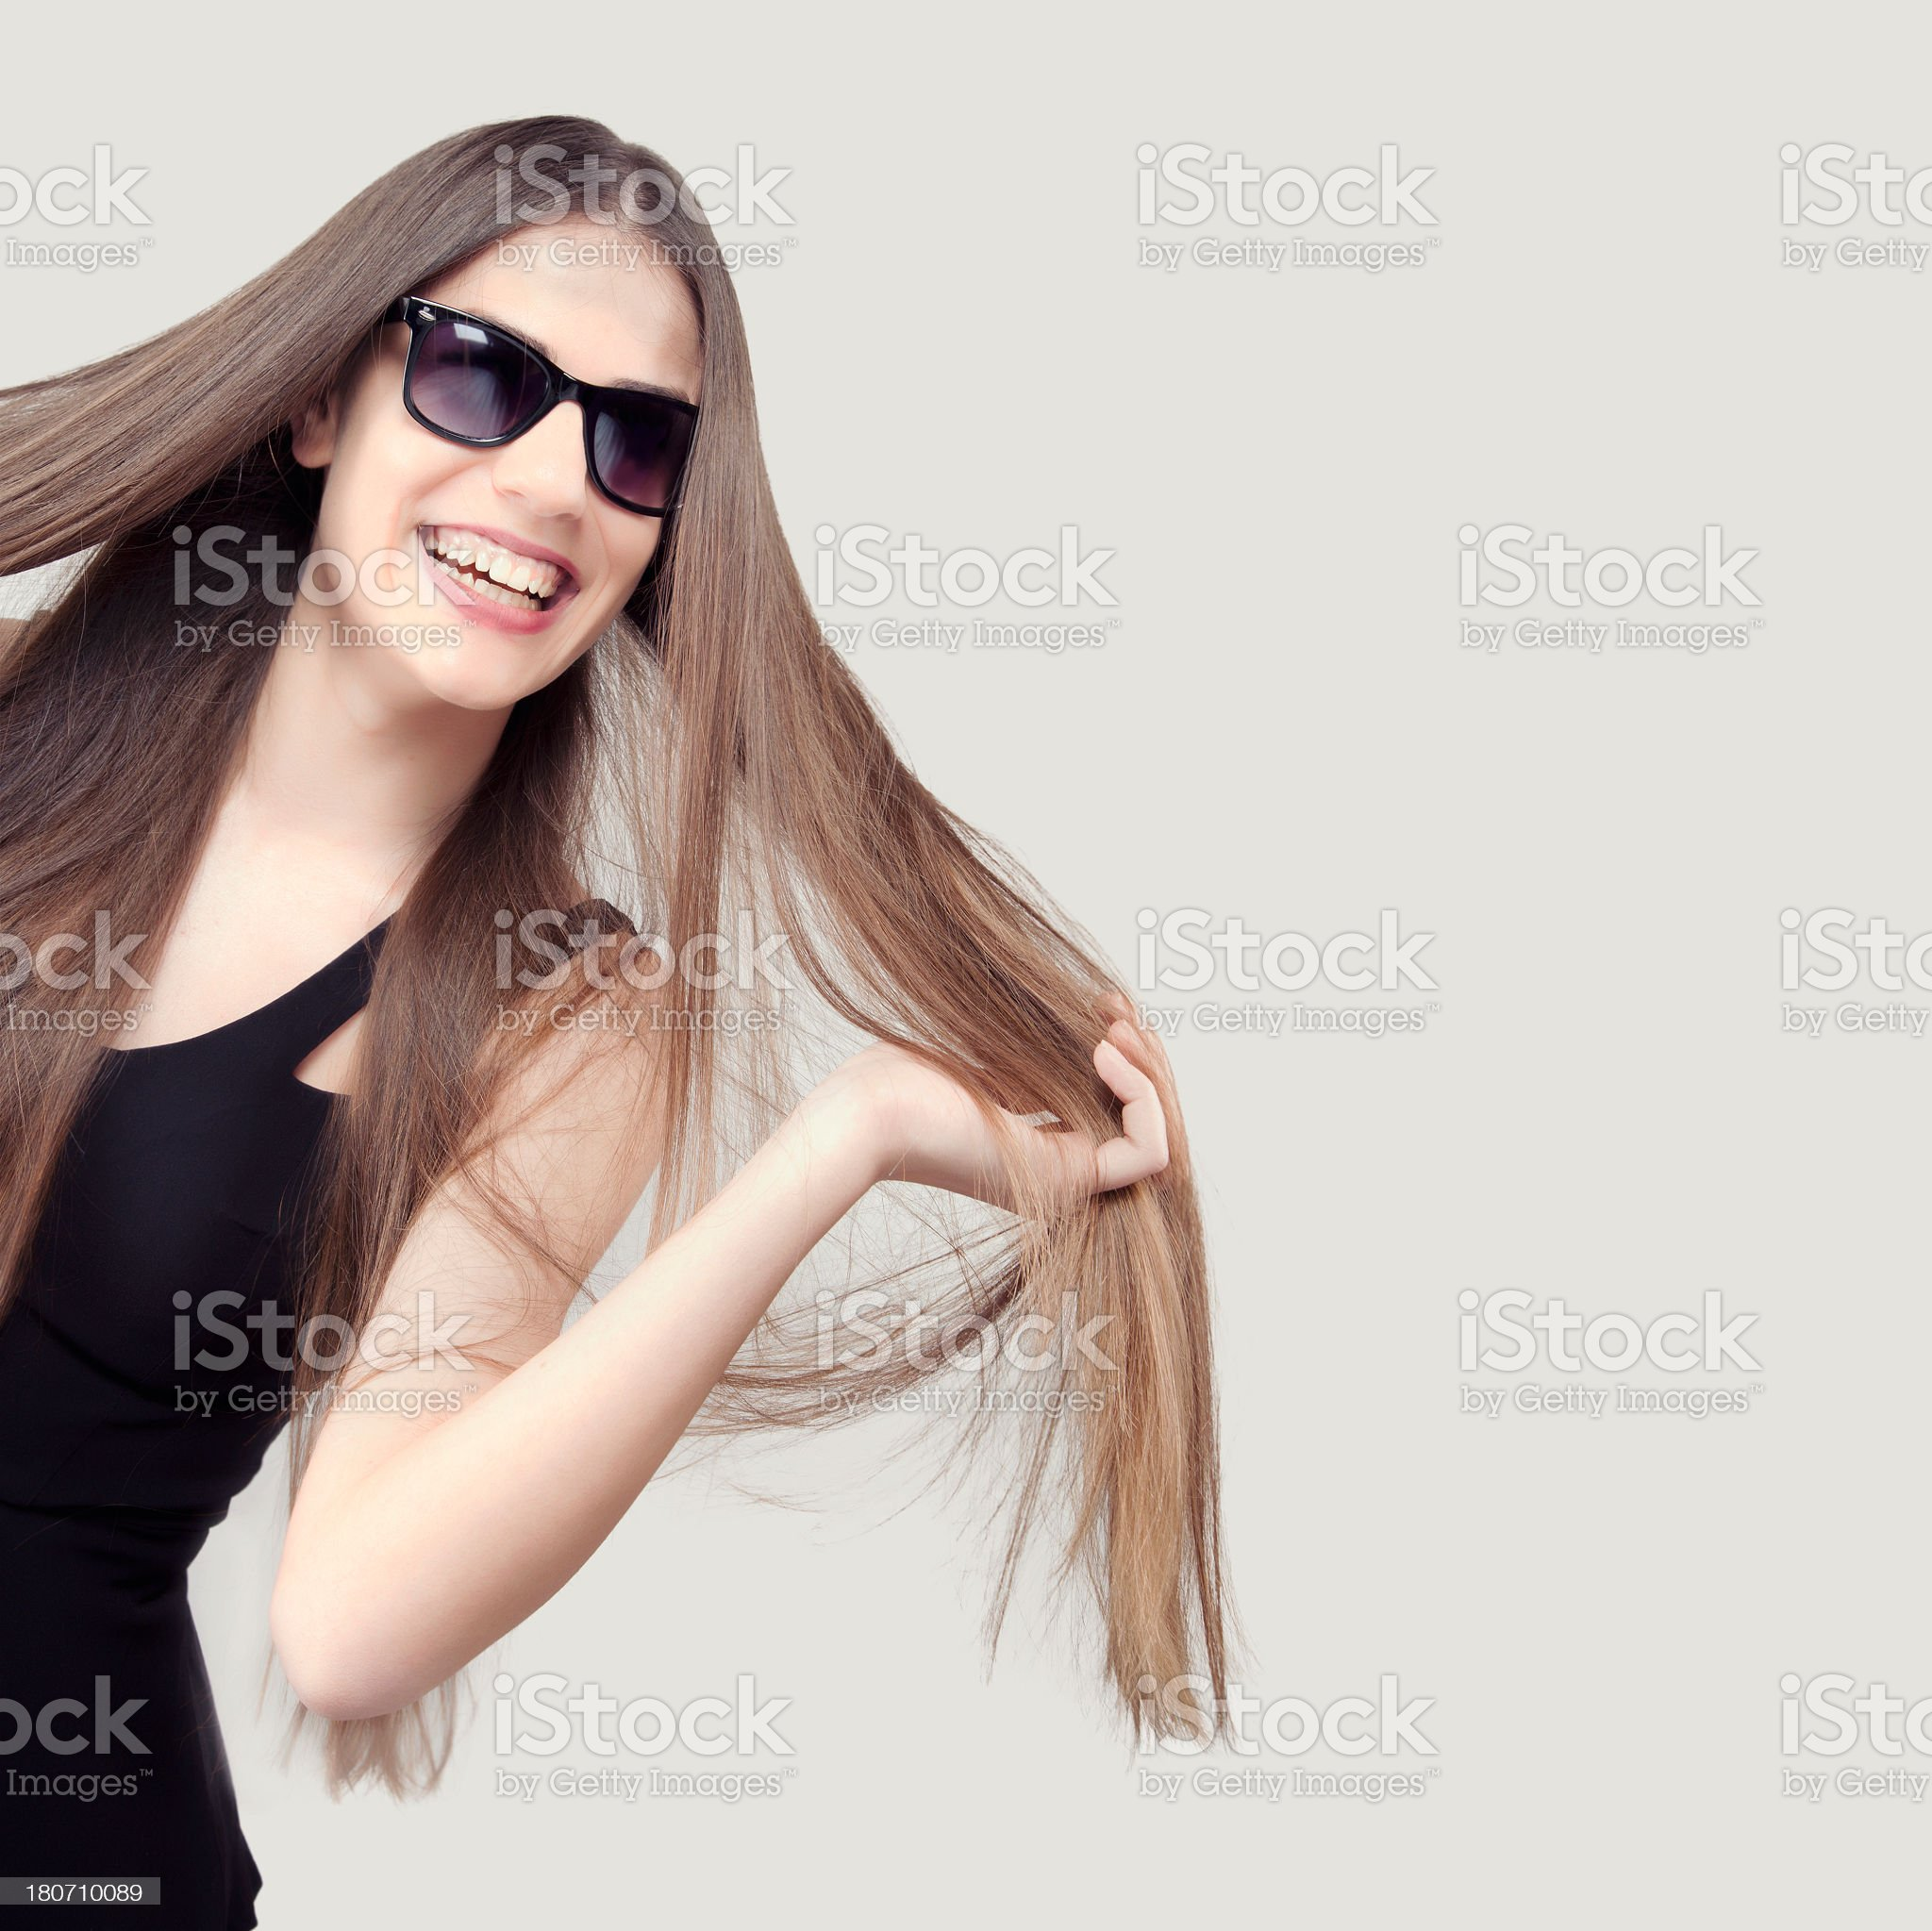 Studio shot of beautiful woman with sunglasses royalty-free stock photo